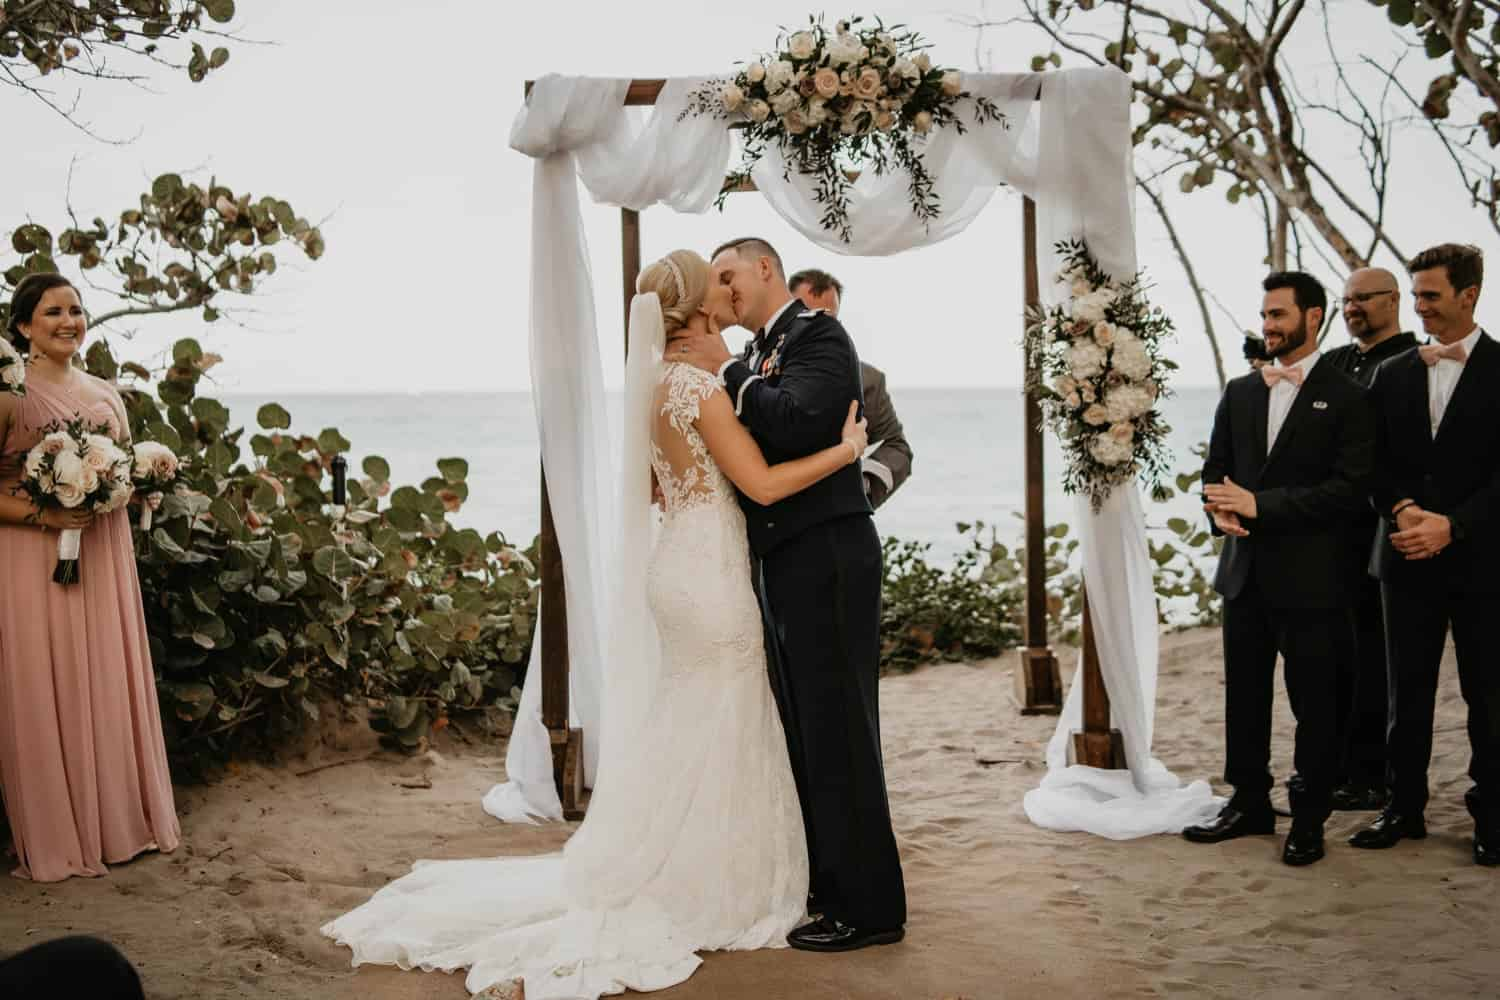 Moody & Intimate Beach Wedding in Florida